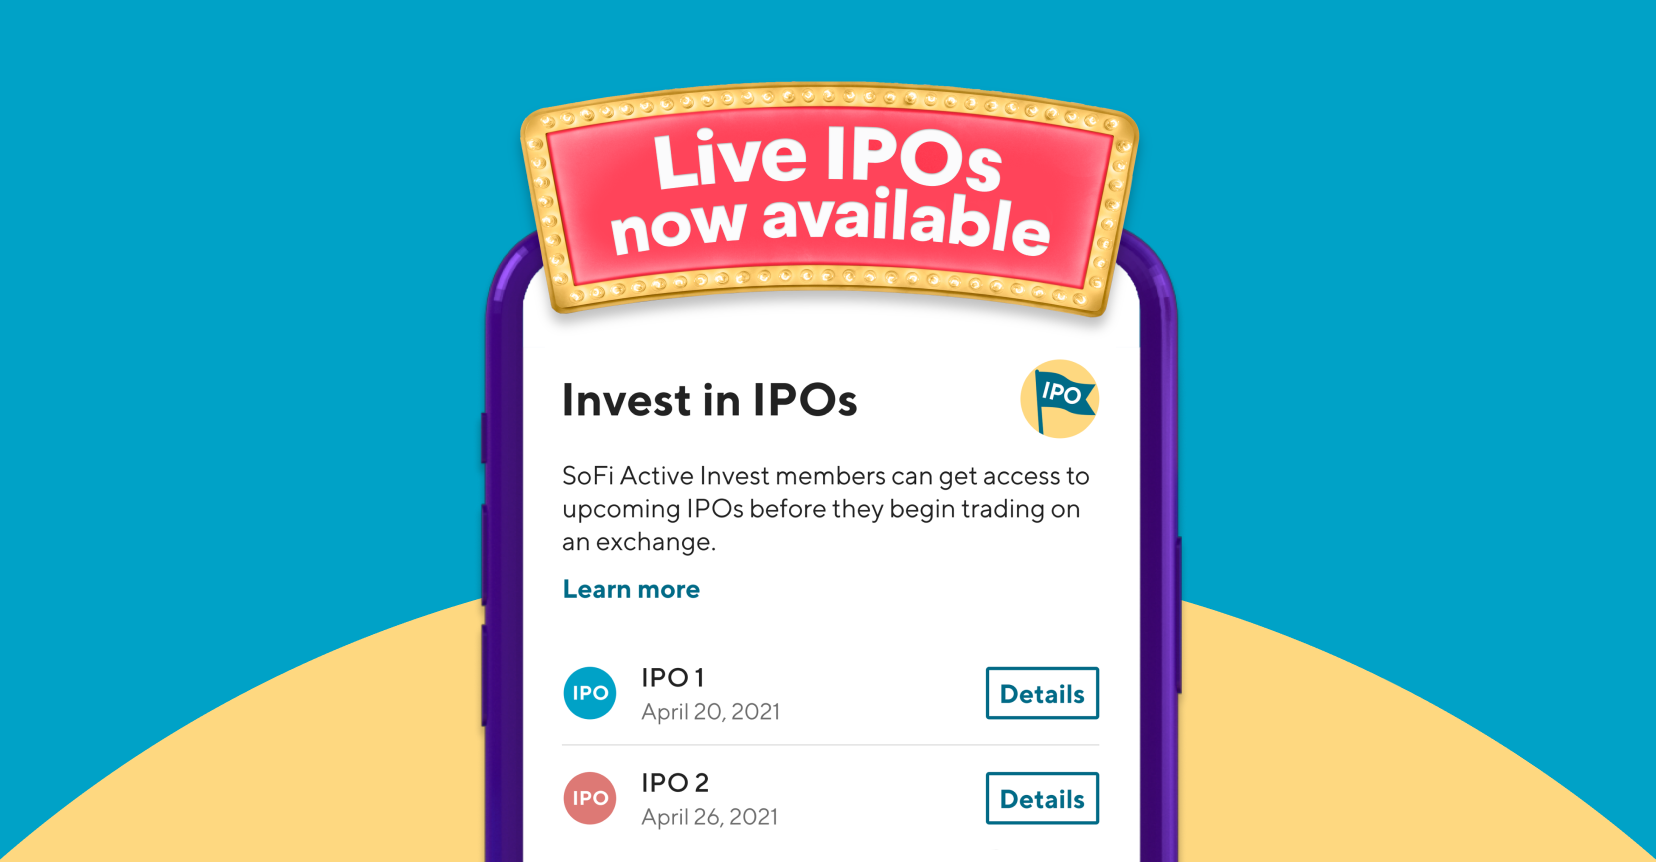 More About IPO Investing